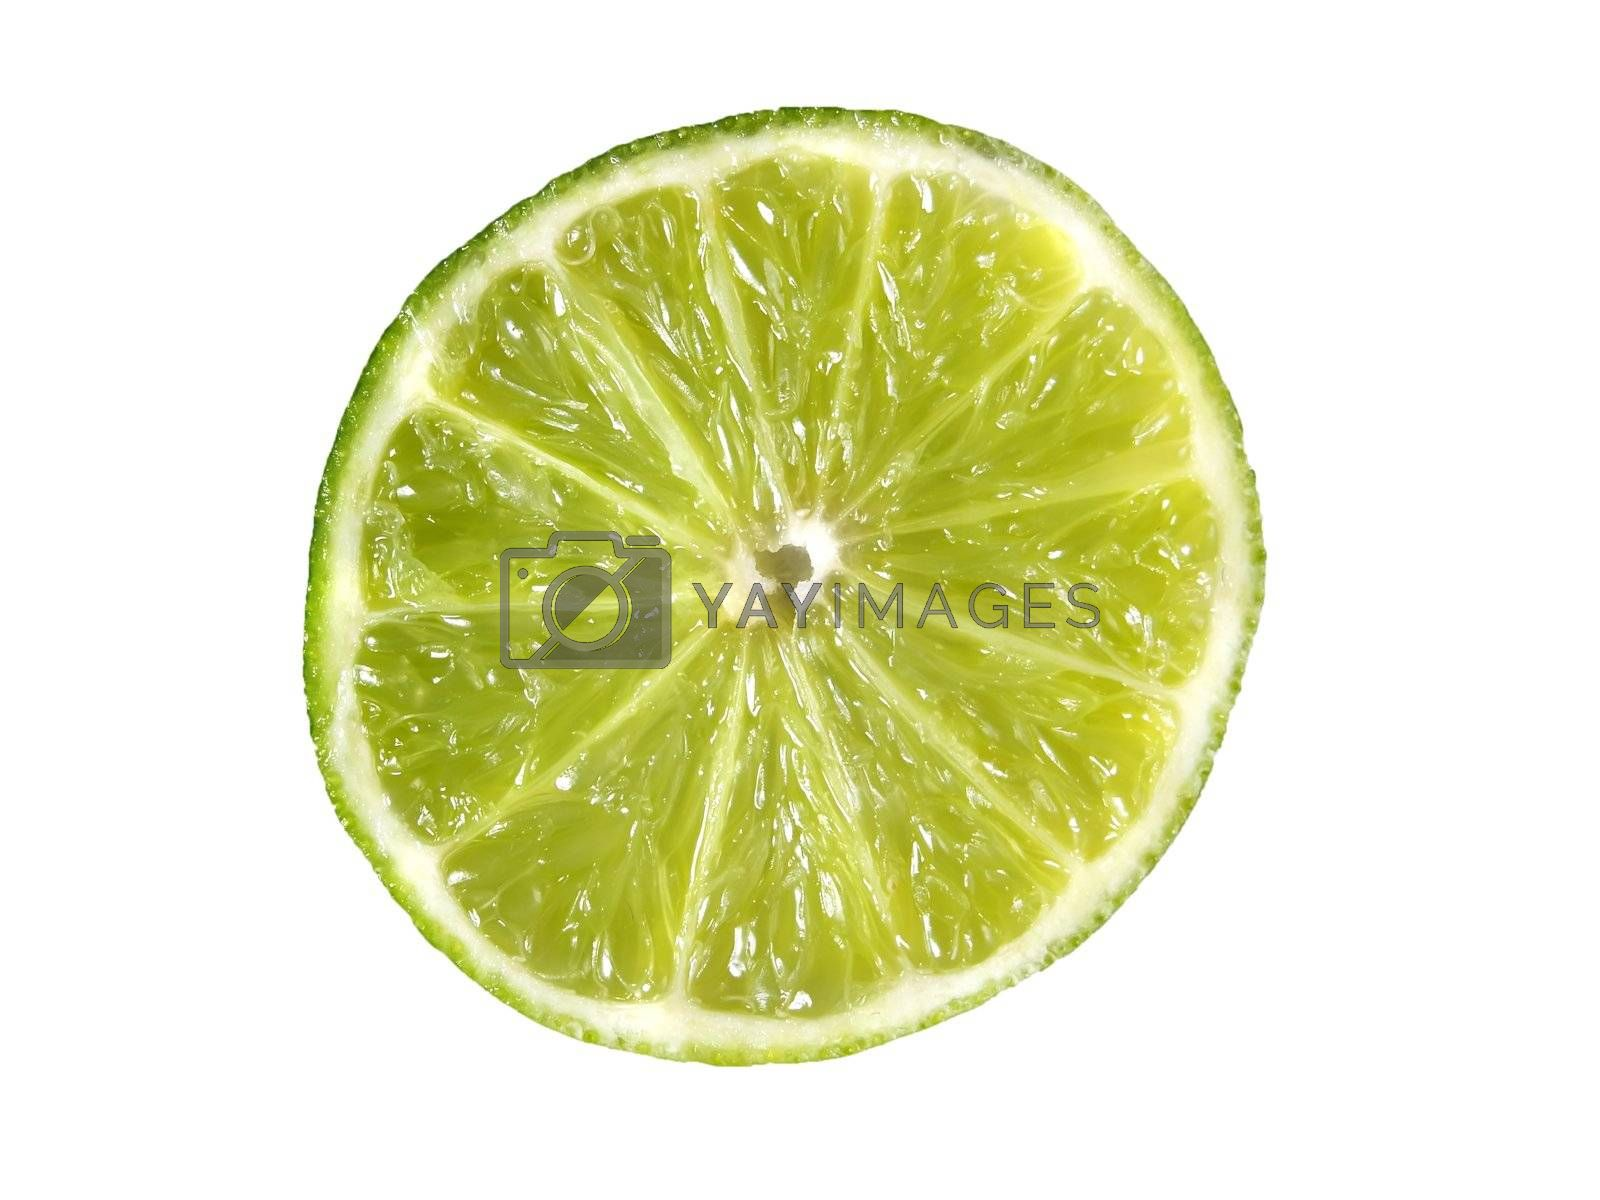 Juicy lime slice isolated on a white background